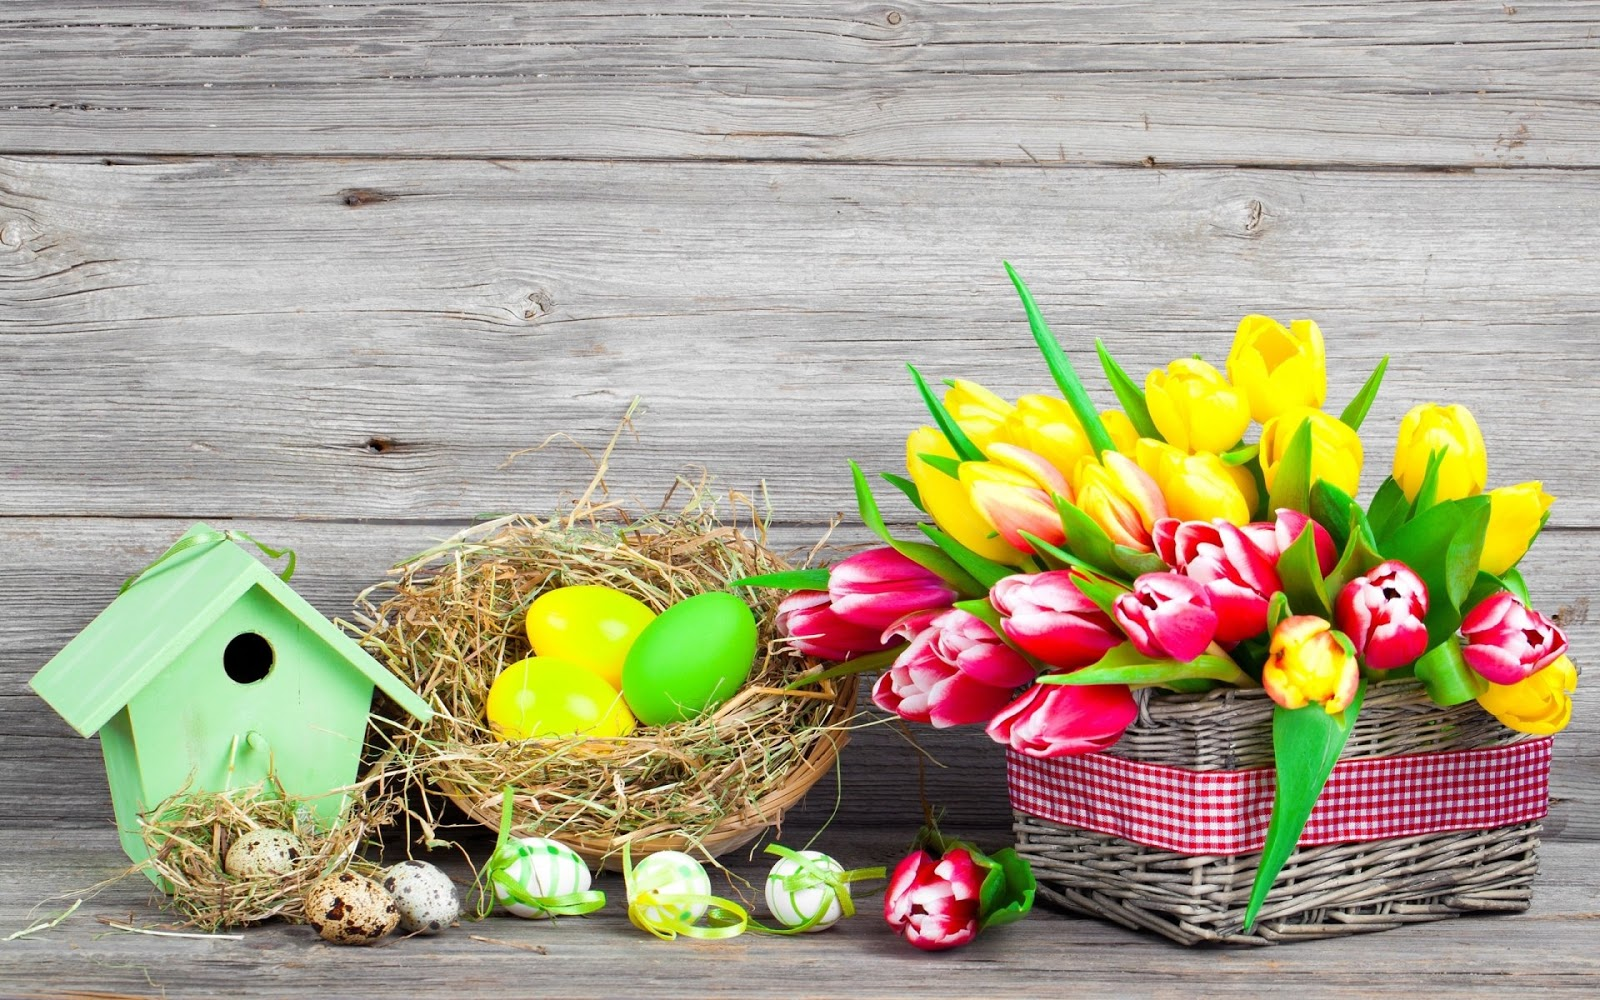 Free Hd Wallpapers Easter Day Wallpapers Hd Images Download 1080p